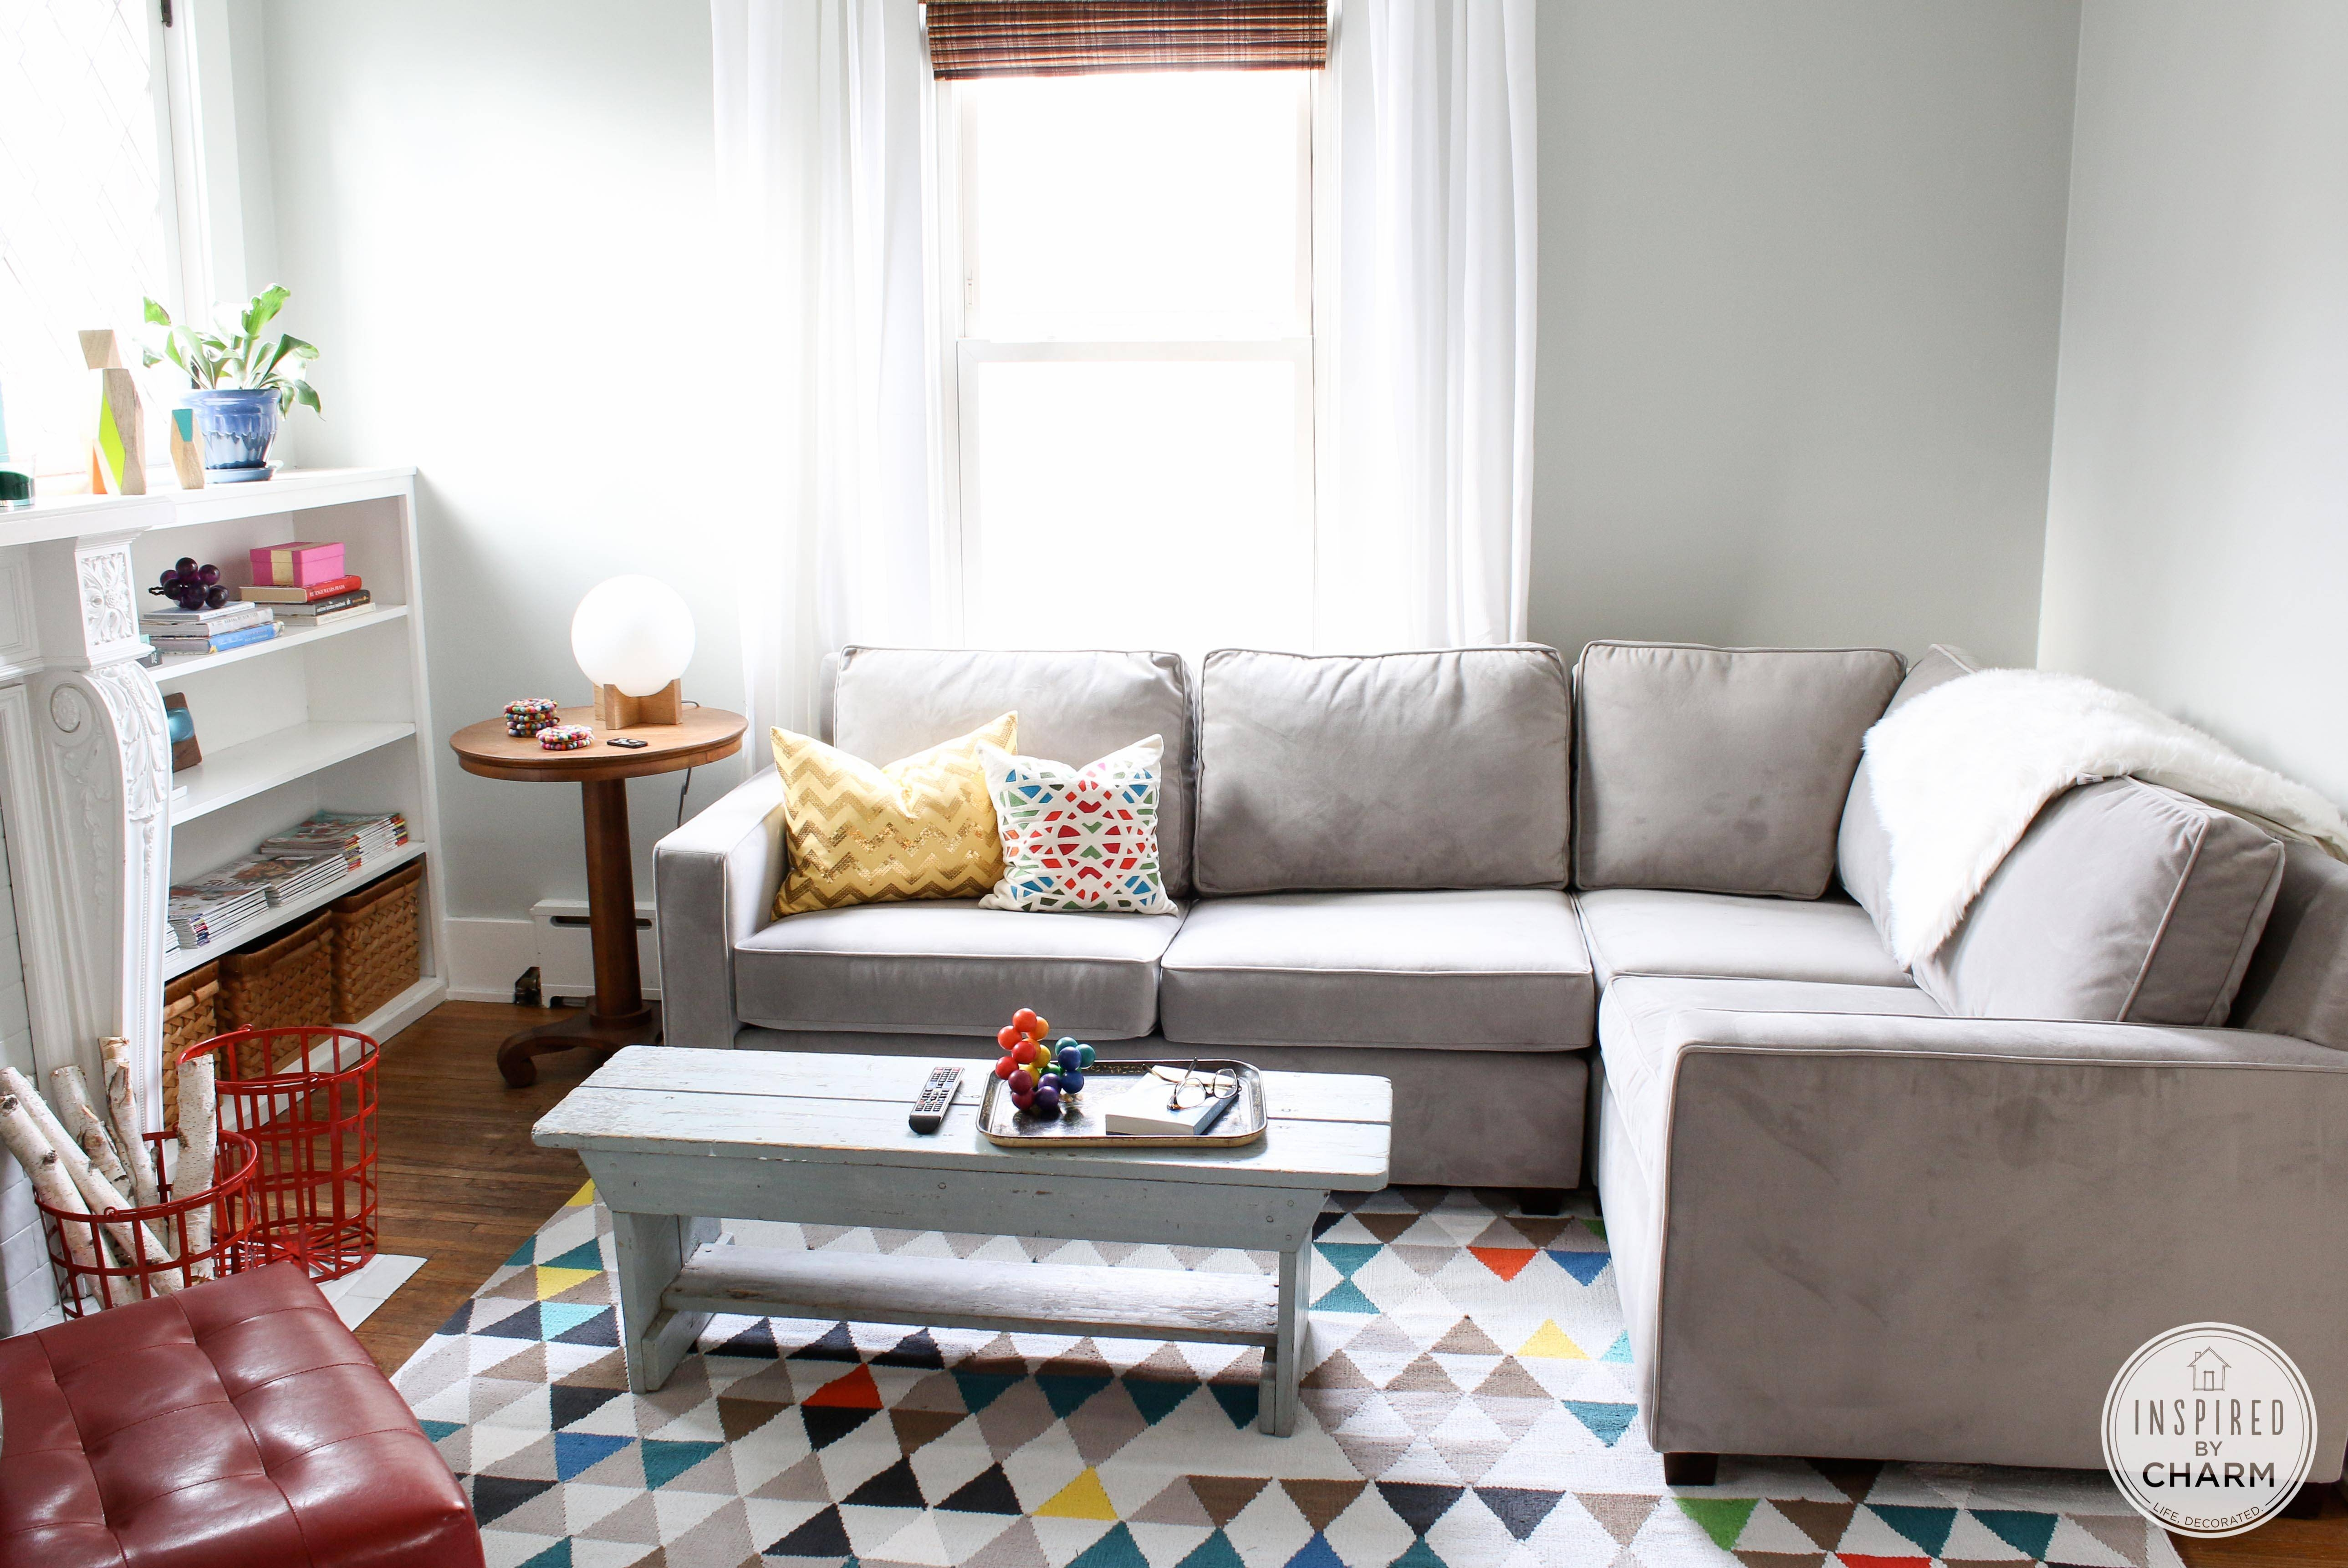 My New Couch Is Here! - Inspiredcharm regarding West Elm Henry Sofas (Image 8 of 15)